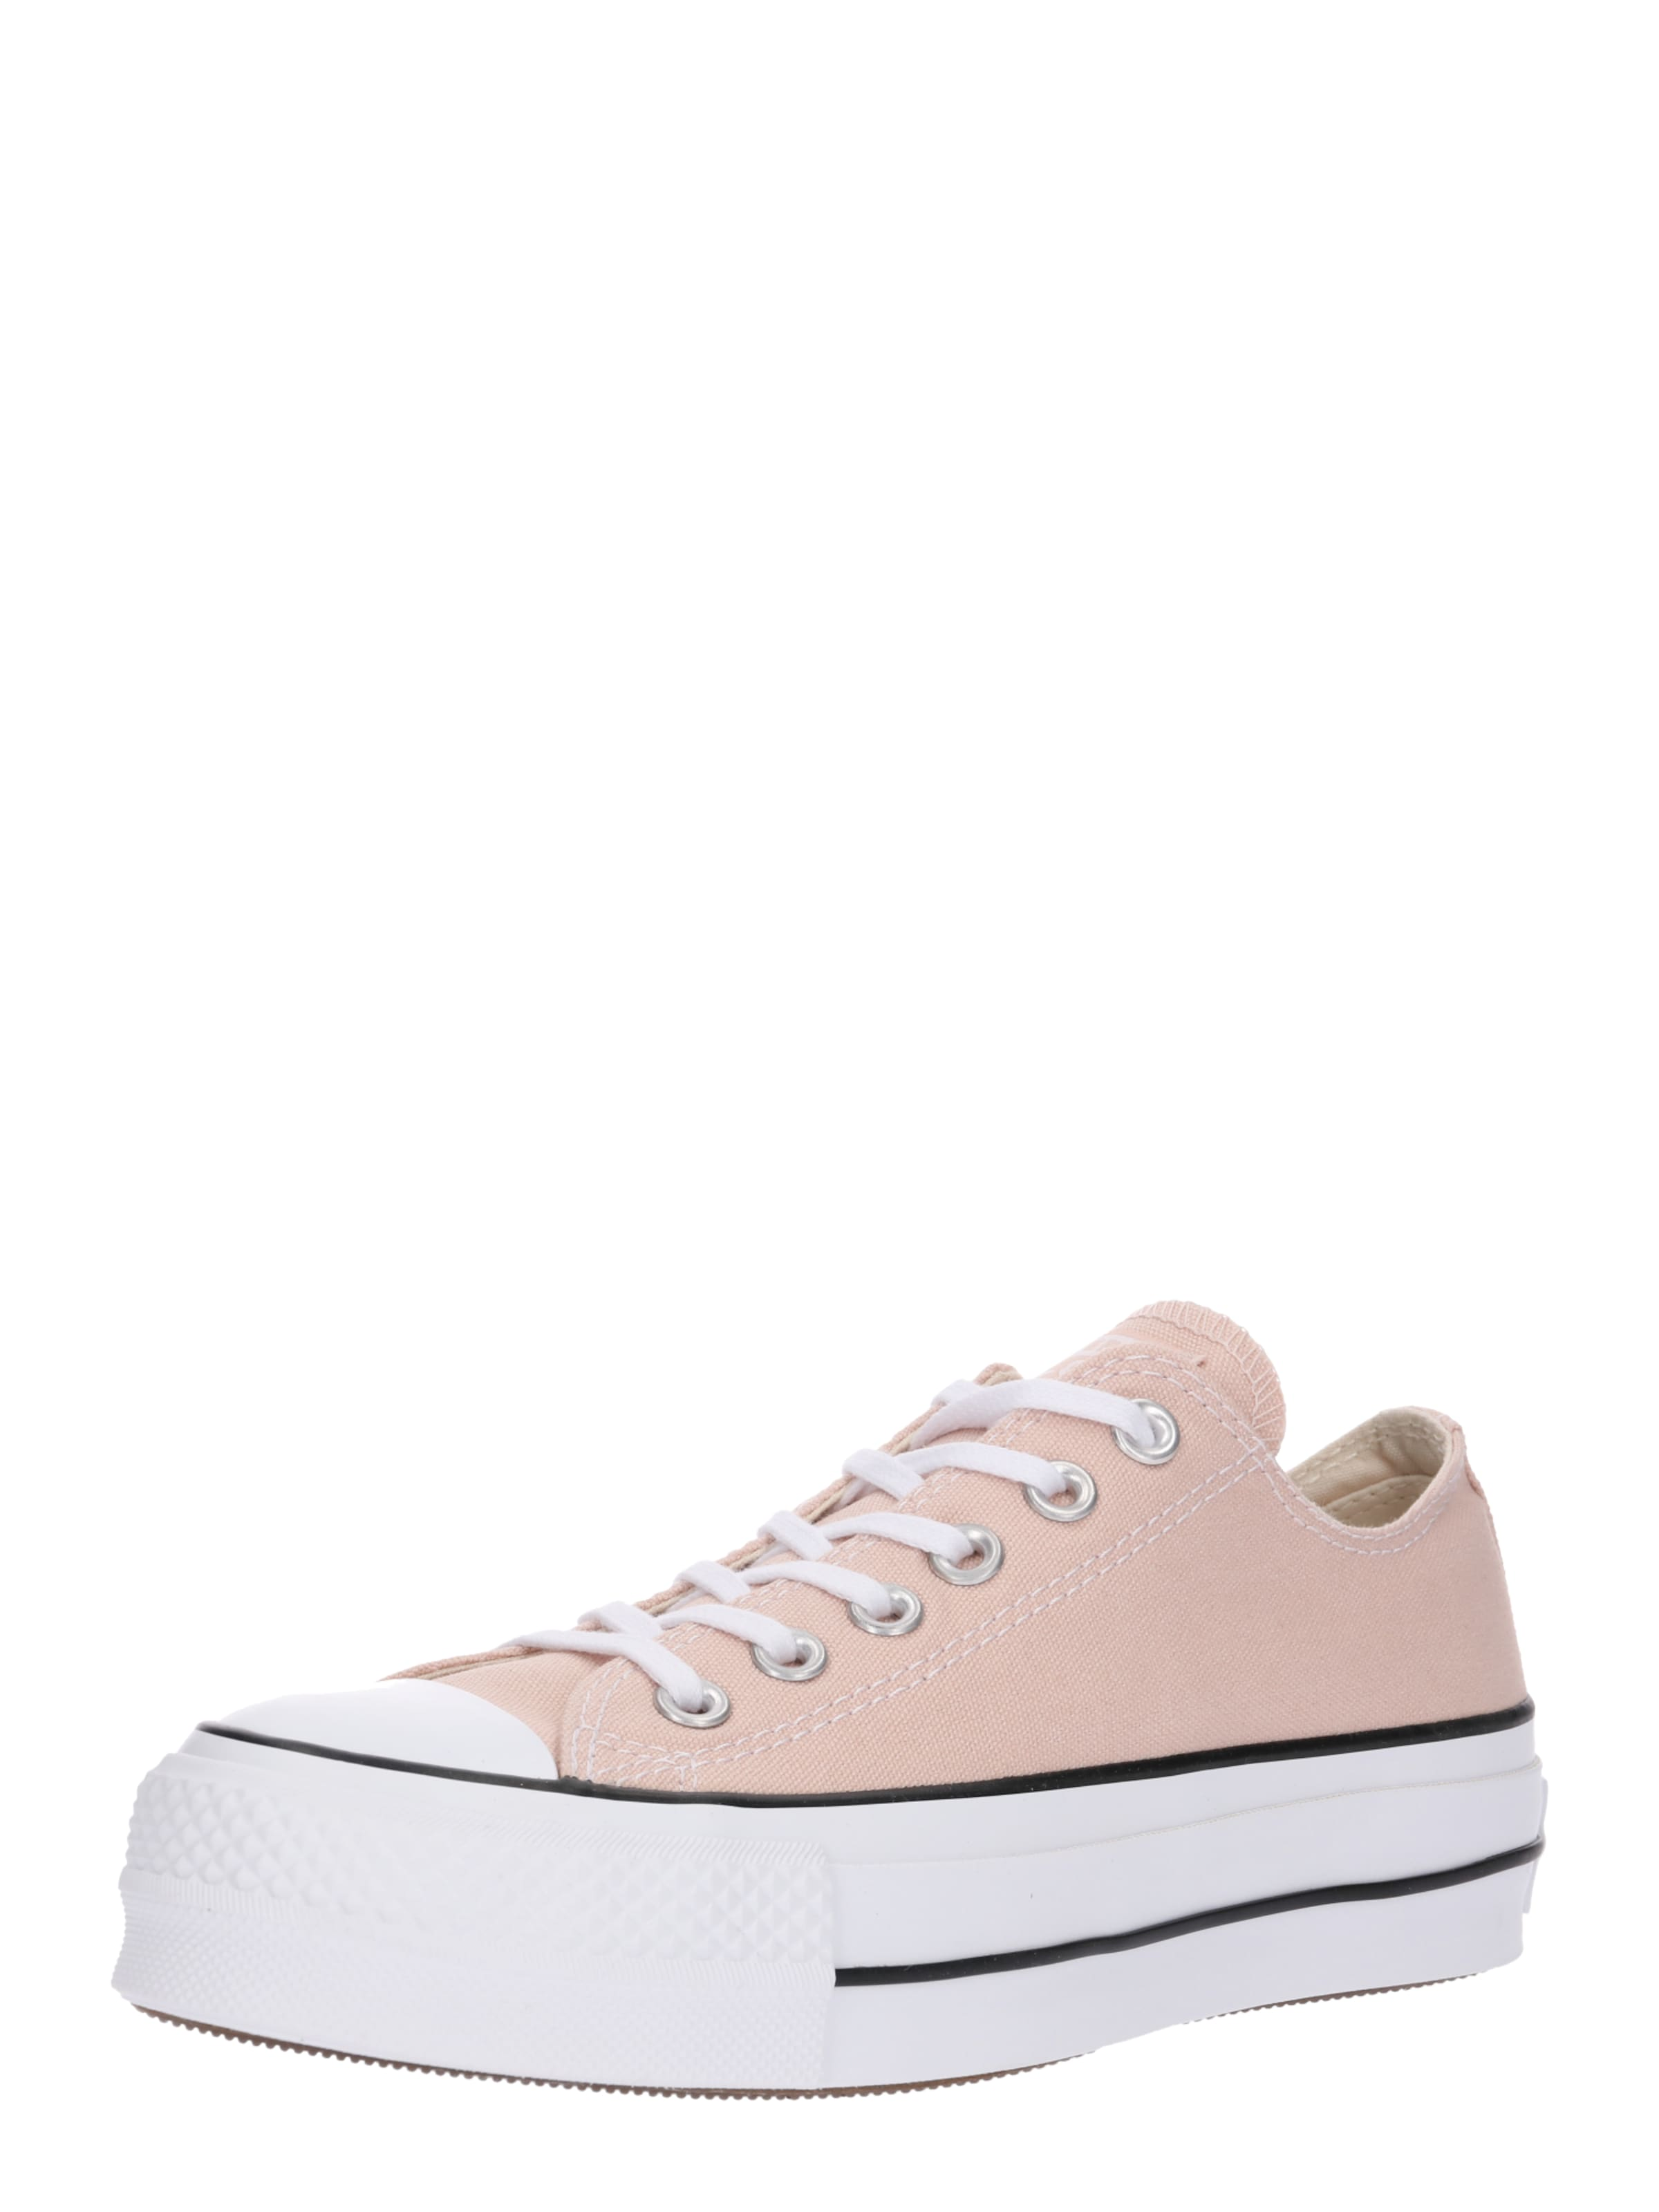 CONVERSE Turnschuhe 'Lift Ox' in champagner   offWeiß